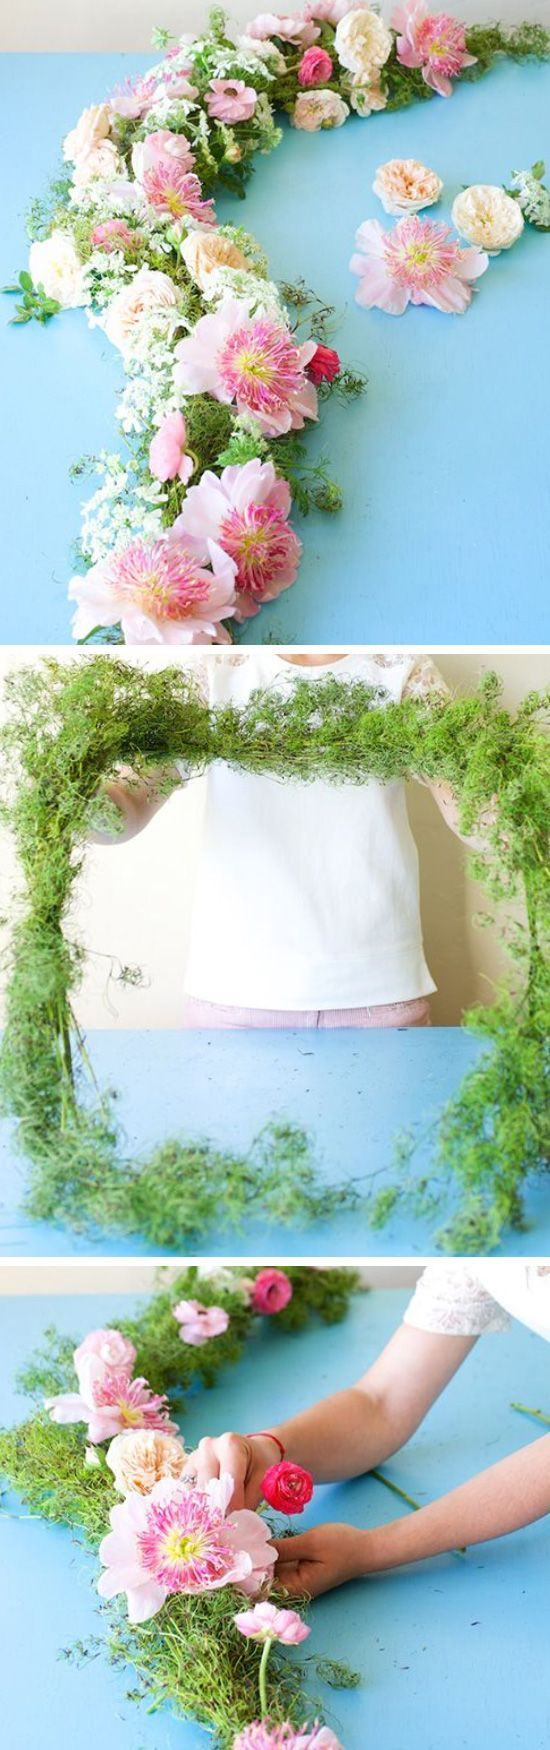 DIY Flower Crown and Garland Tutorial | Click Pic for 24 DIY Spring Wedding Ideas on a Budget | DIY Spring Wedding Flowers Ideas